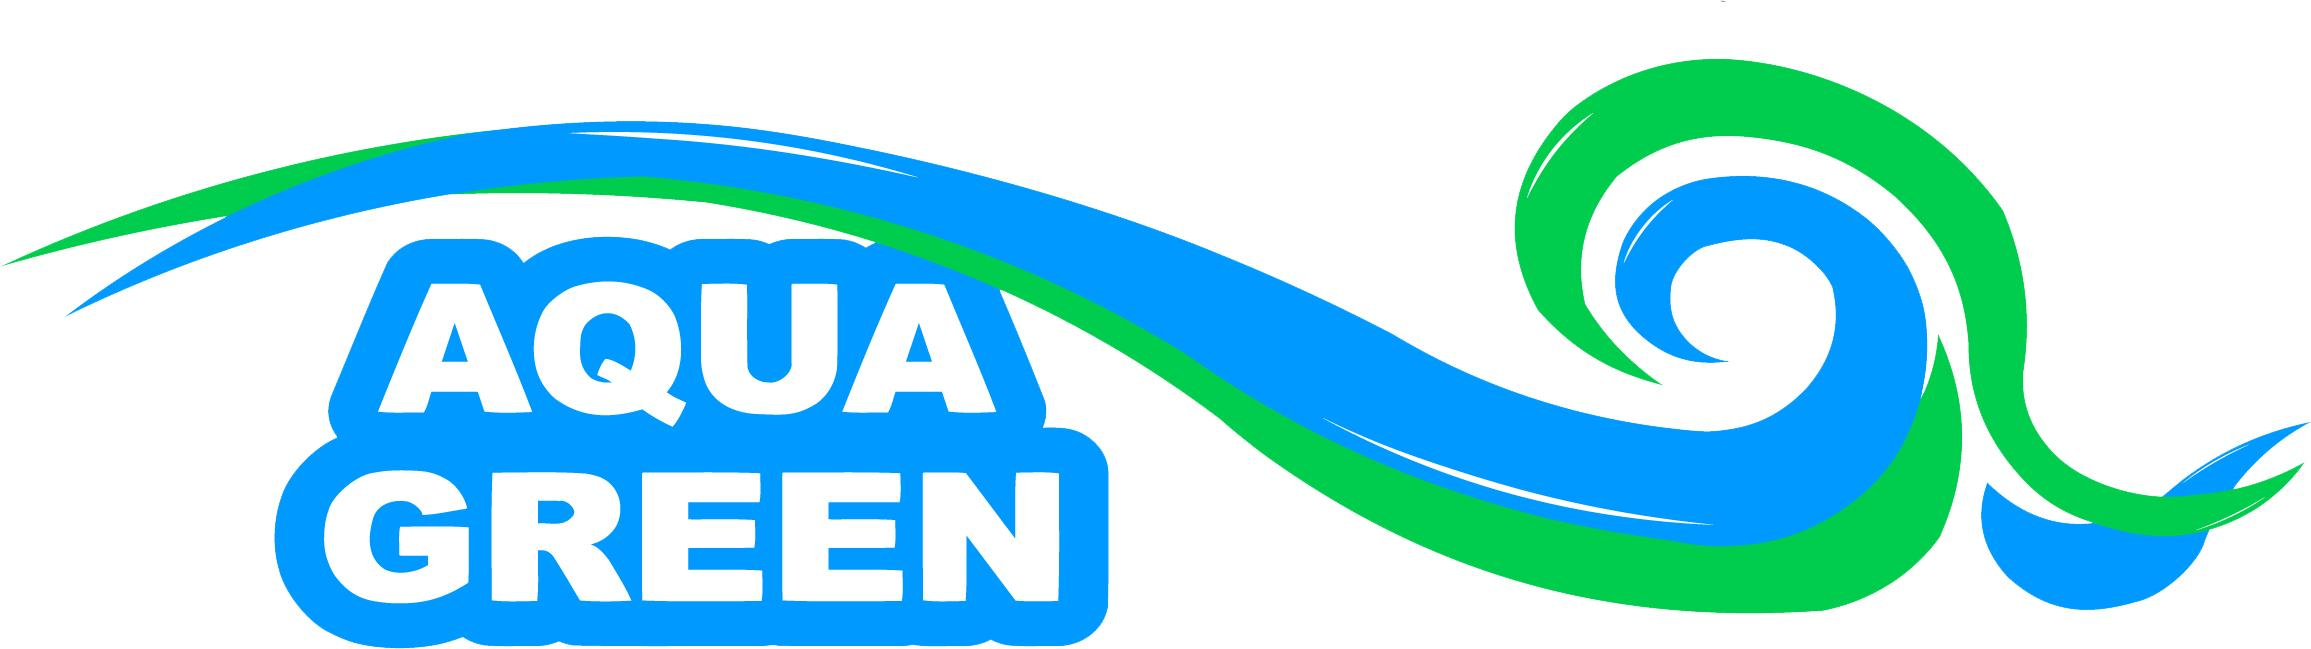 aquagreen logo_12